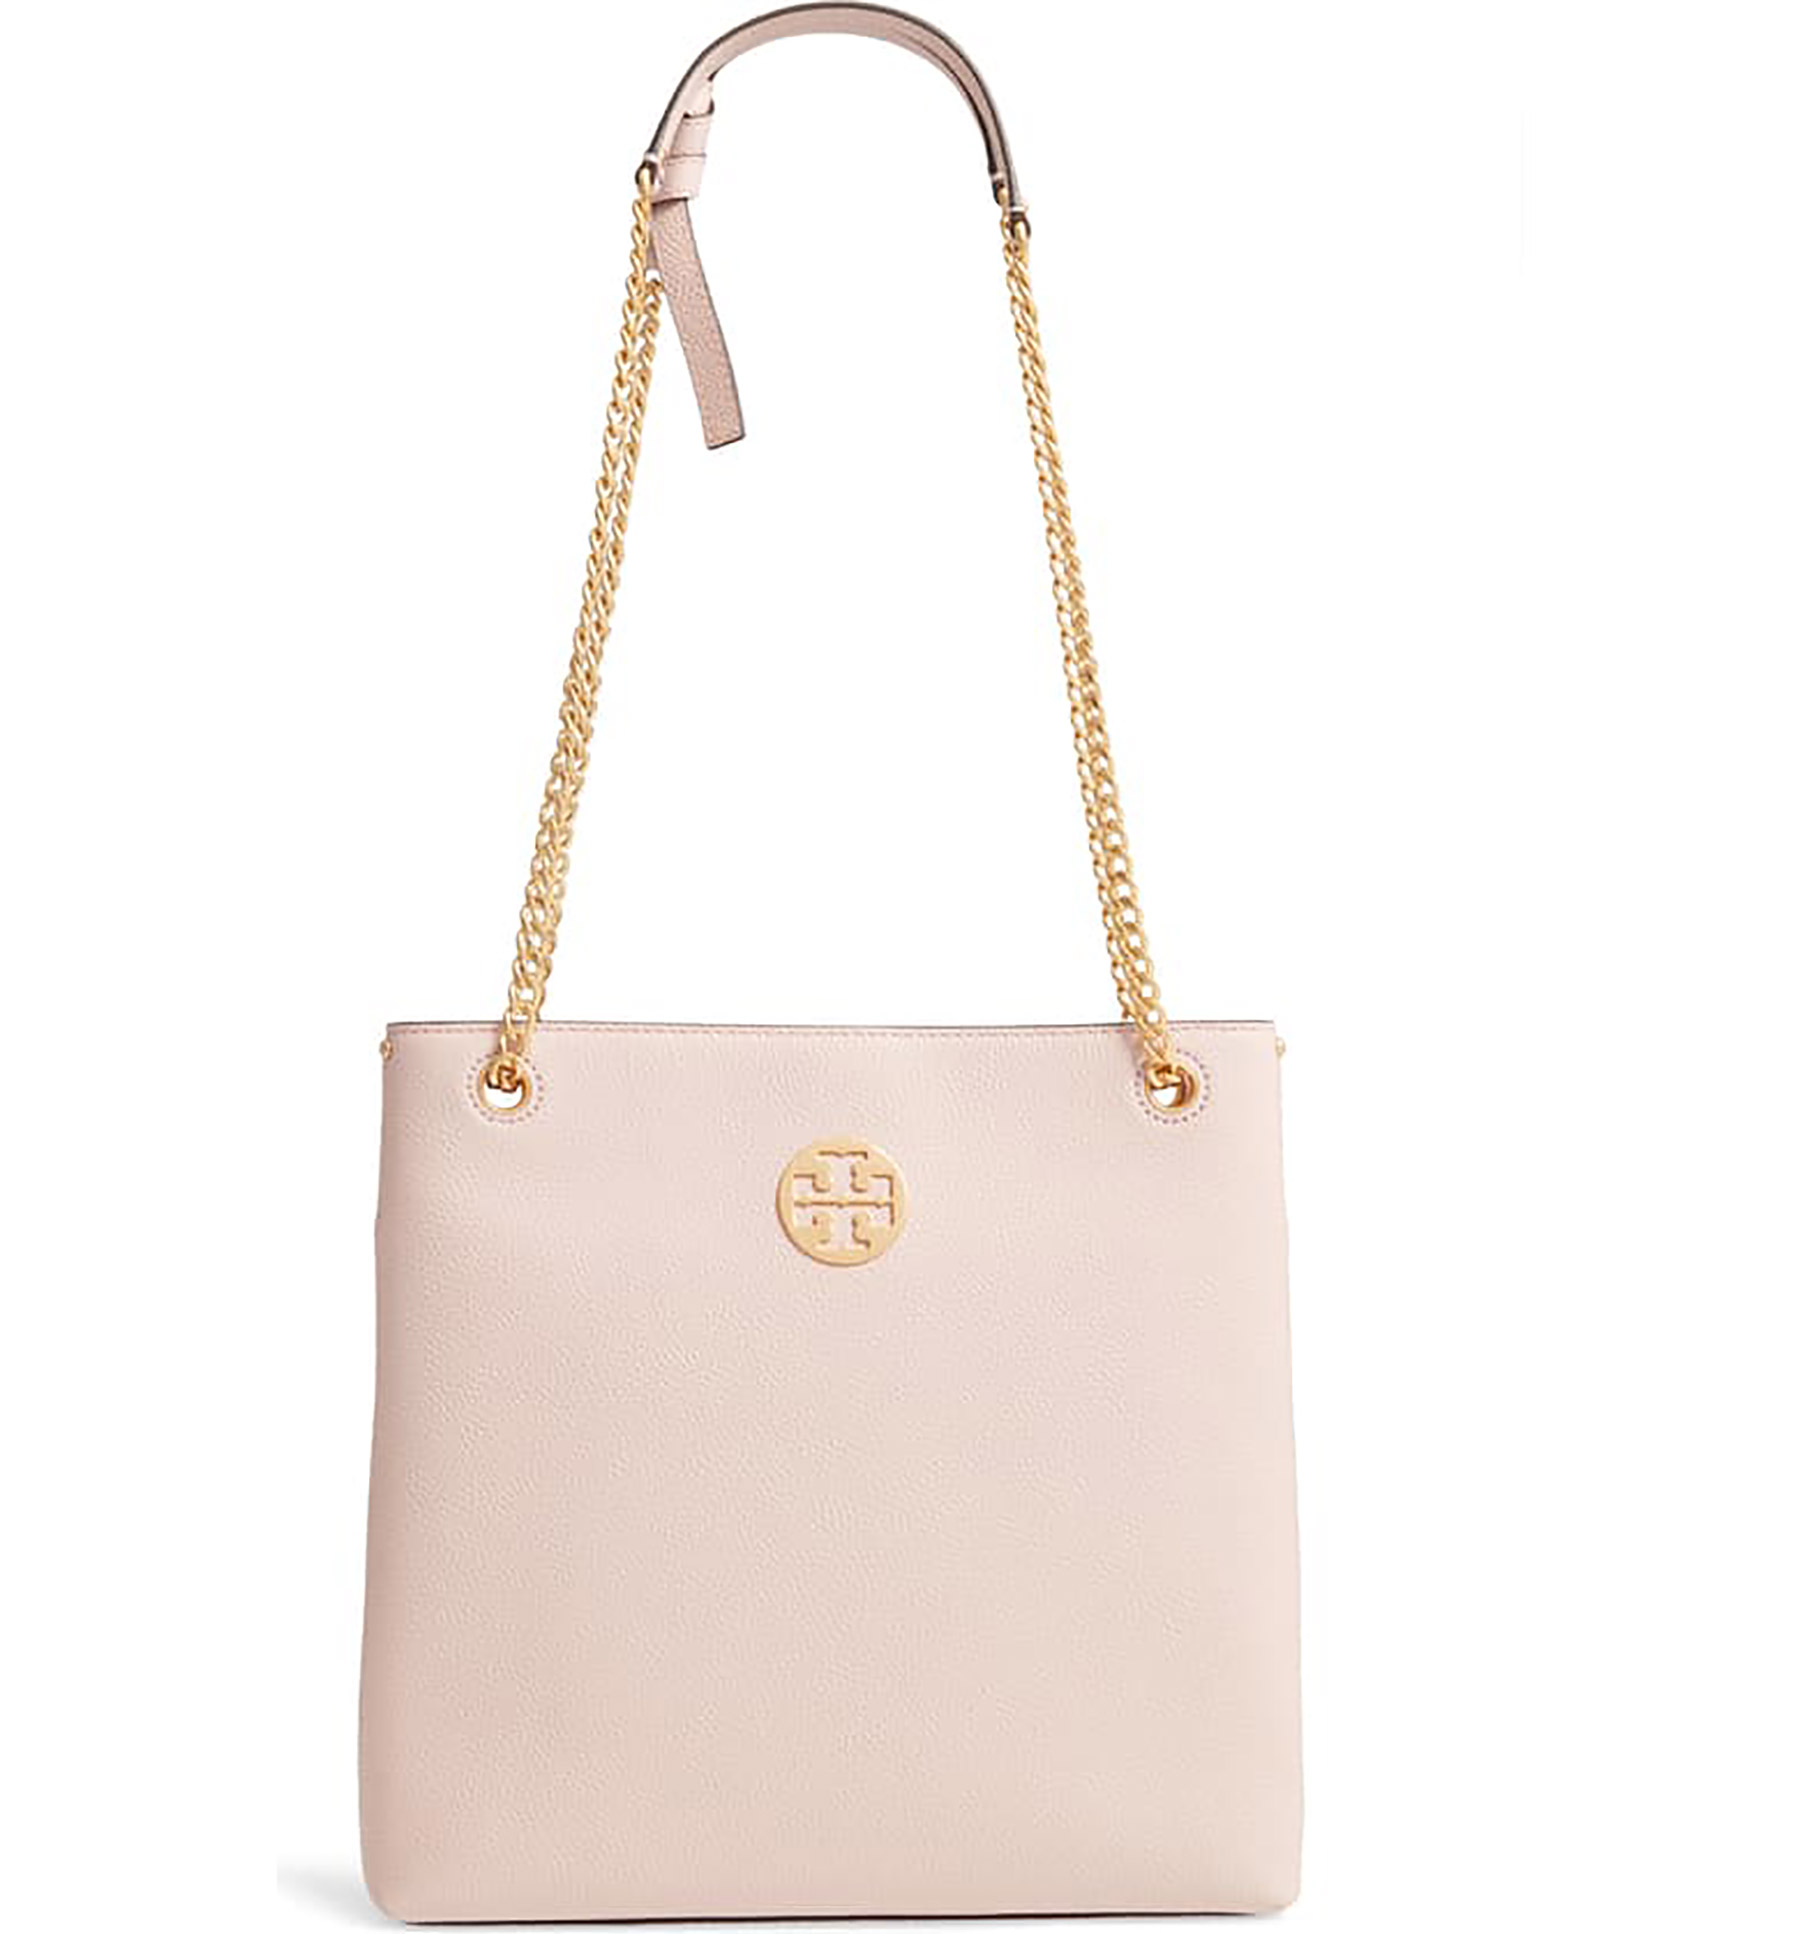 Tory Burch Everly Leather Swingpack at Nordstrom